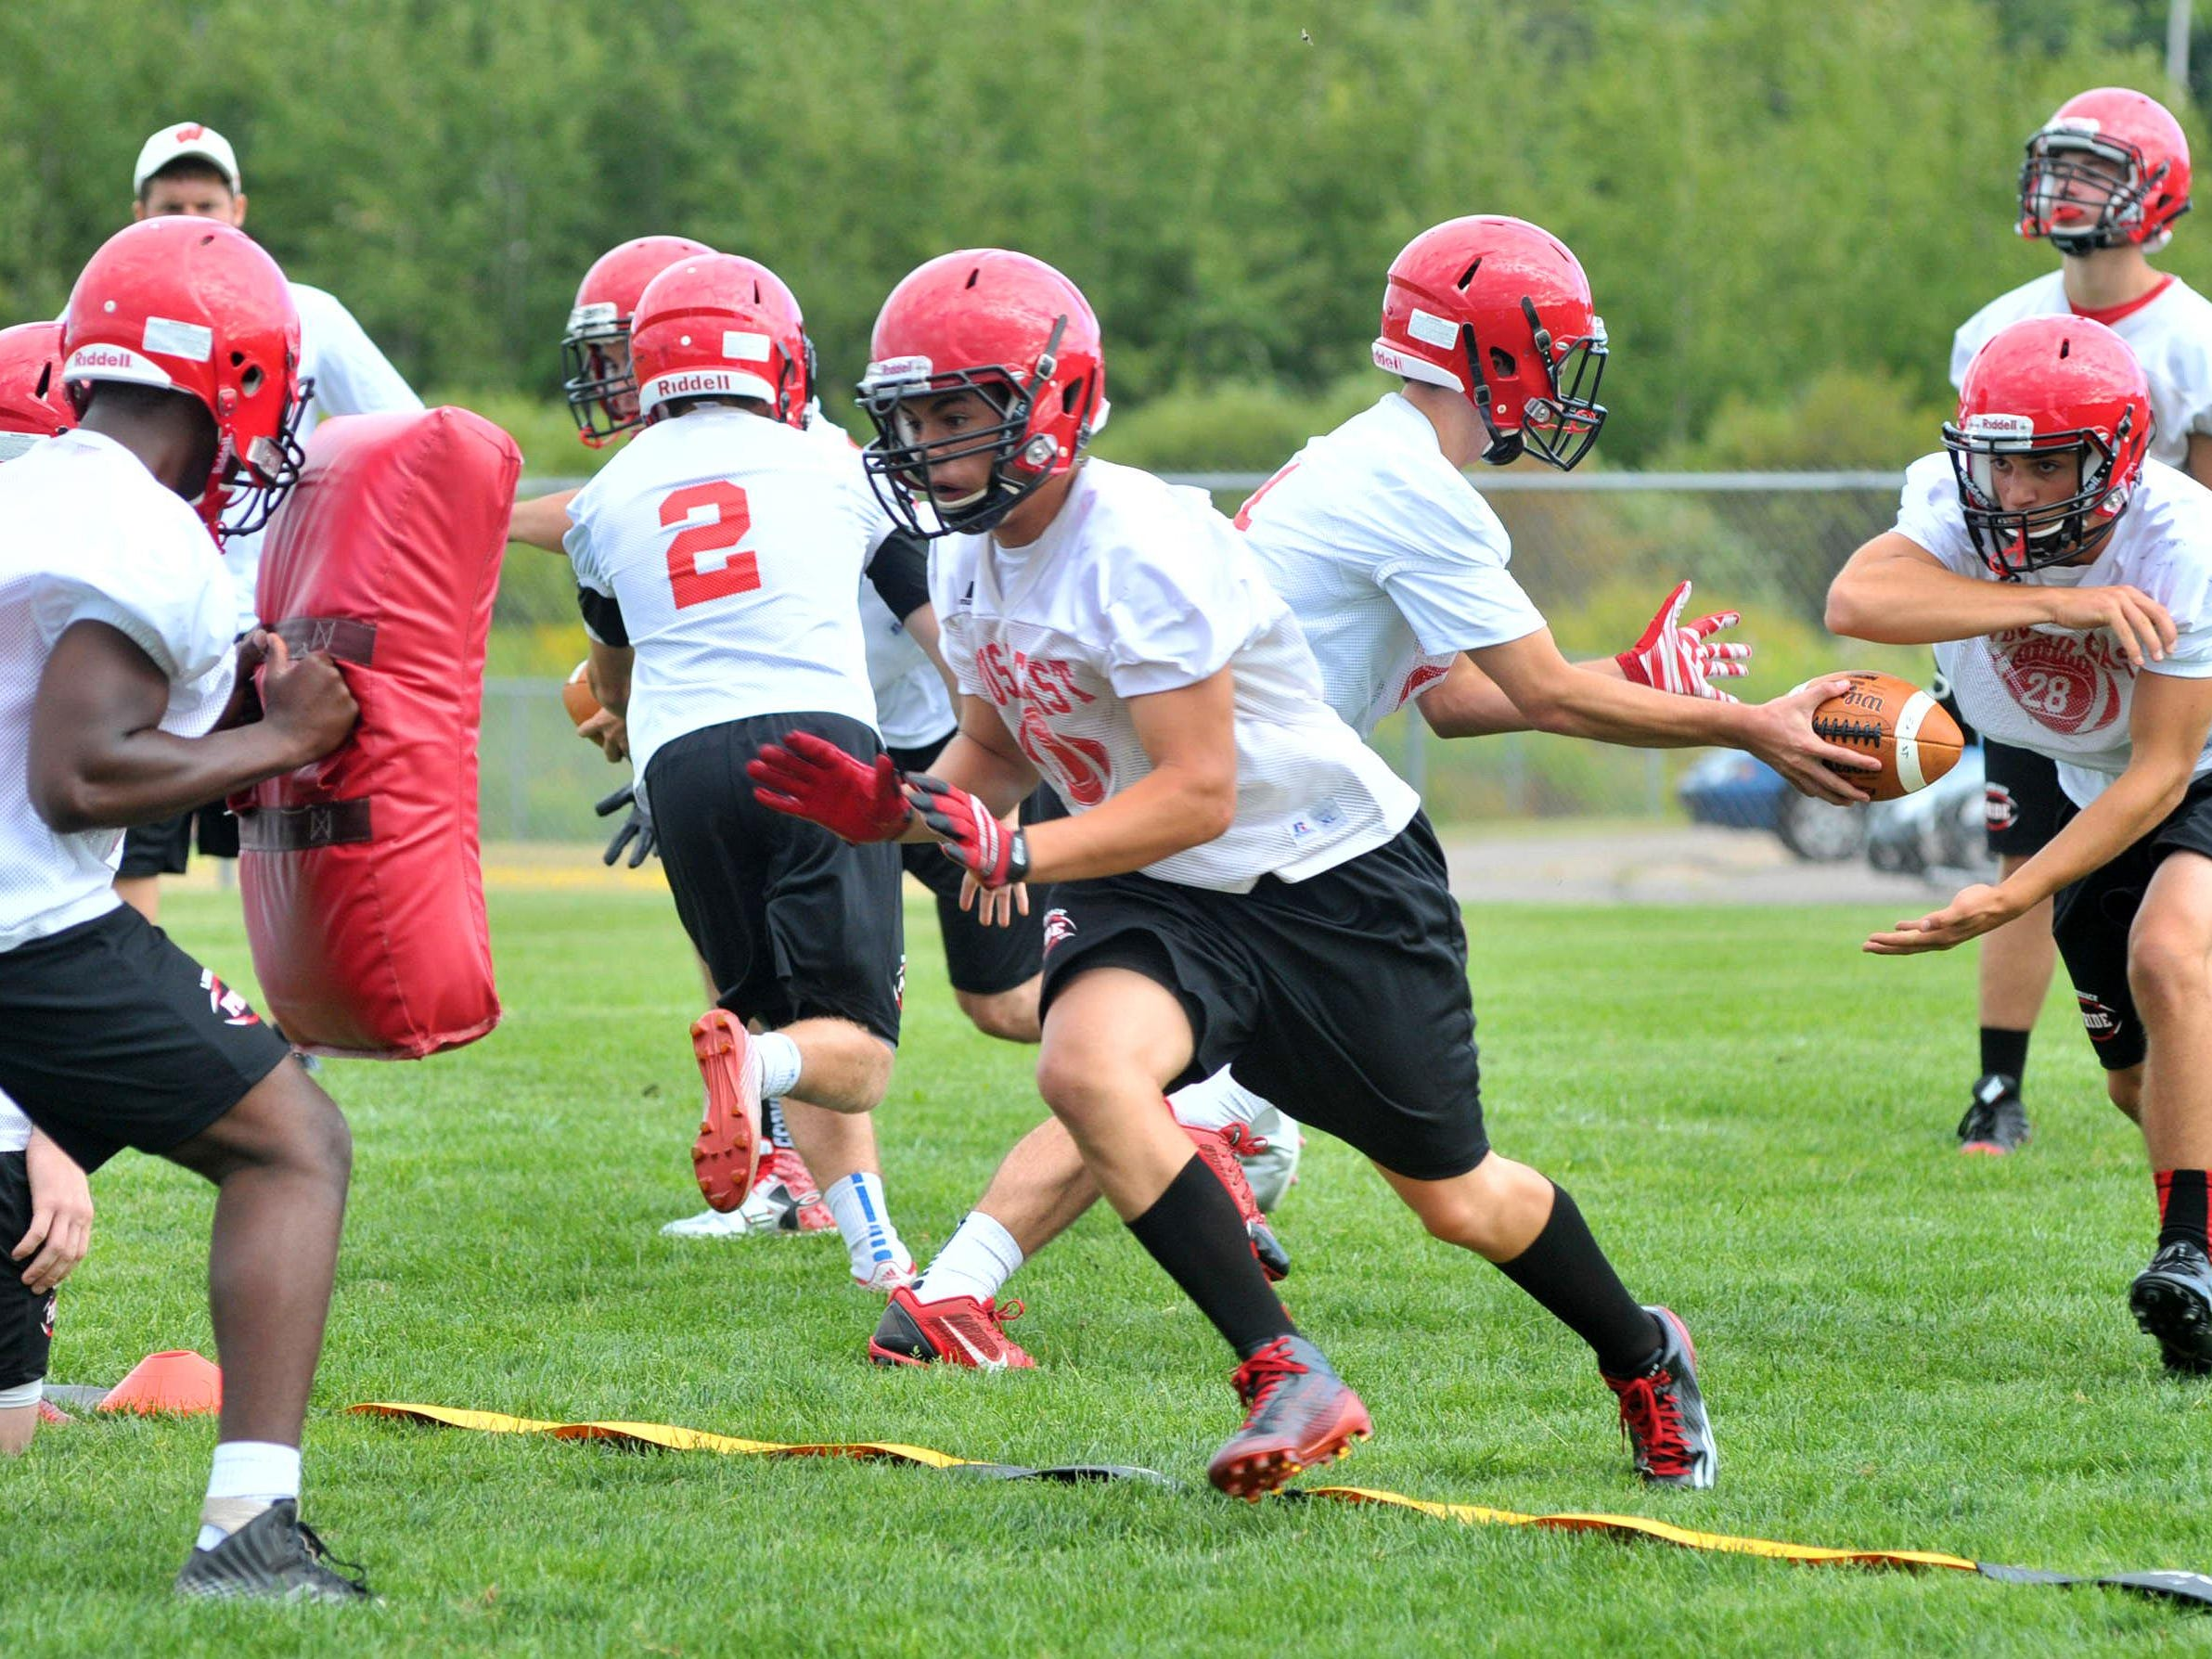 Wausau East football players work on a drill during Tuesday's first day of practice at Wausau East High School football field in Wausau.